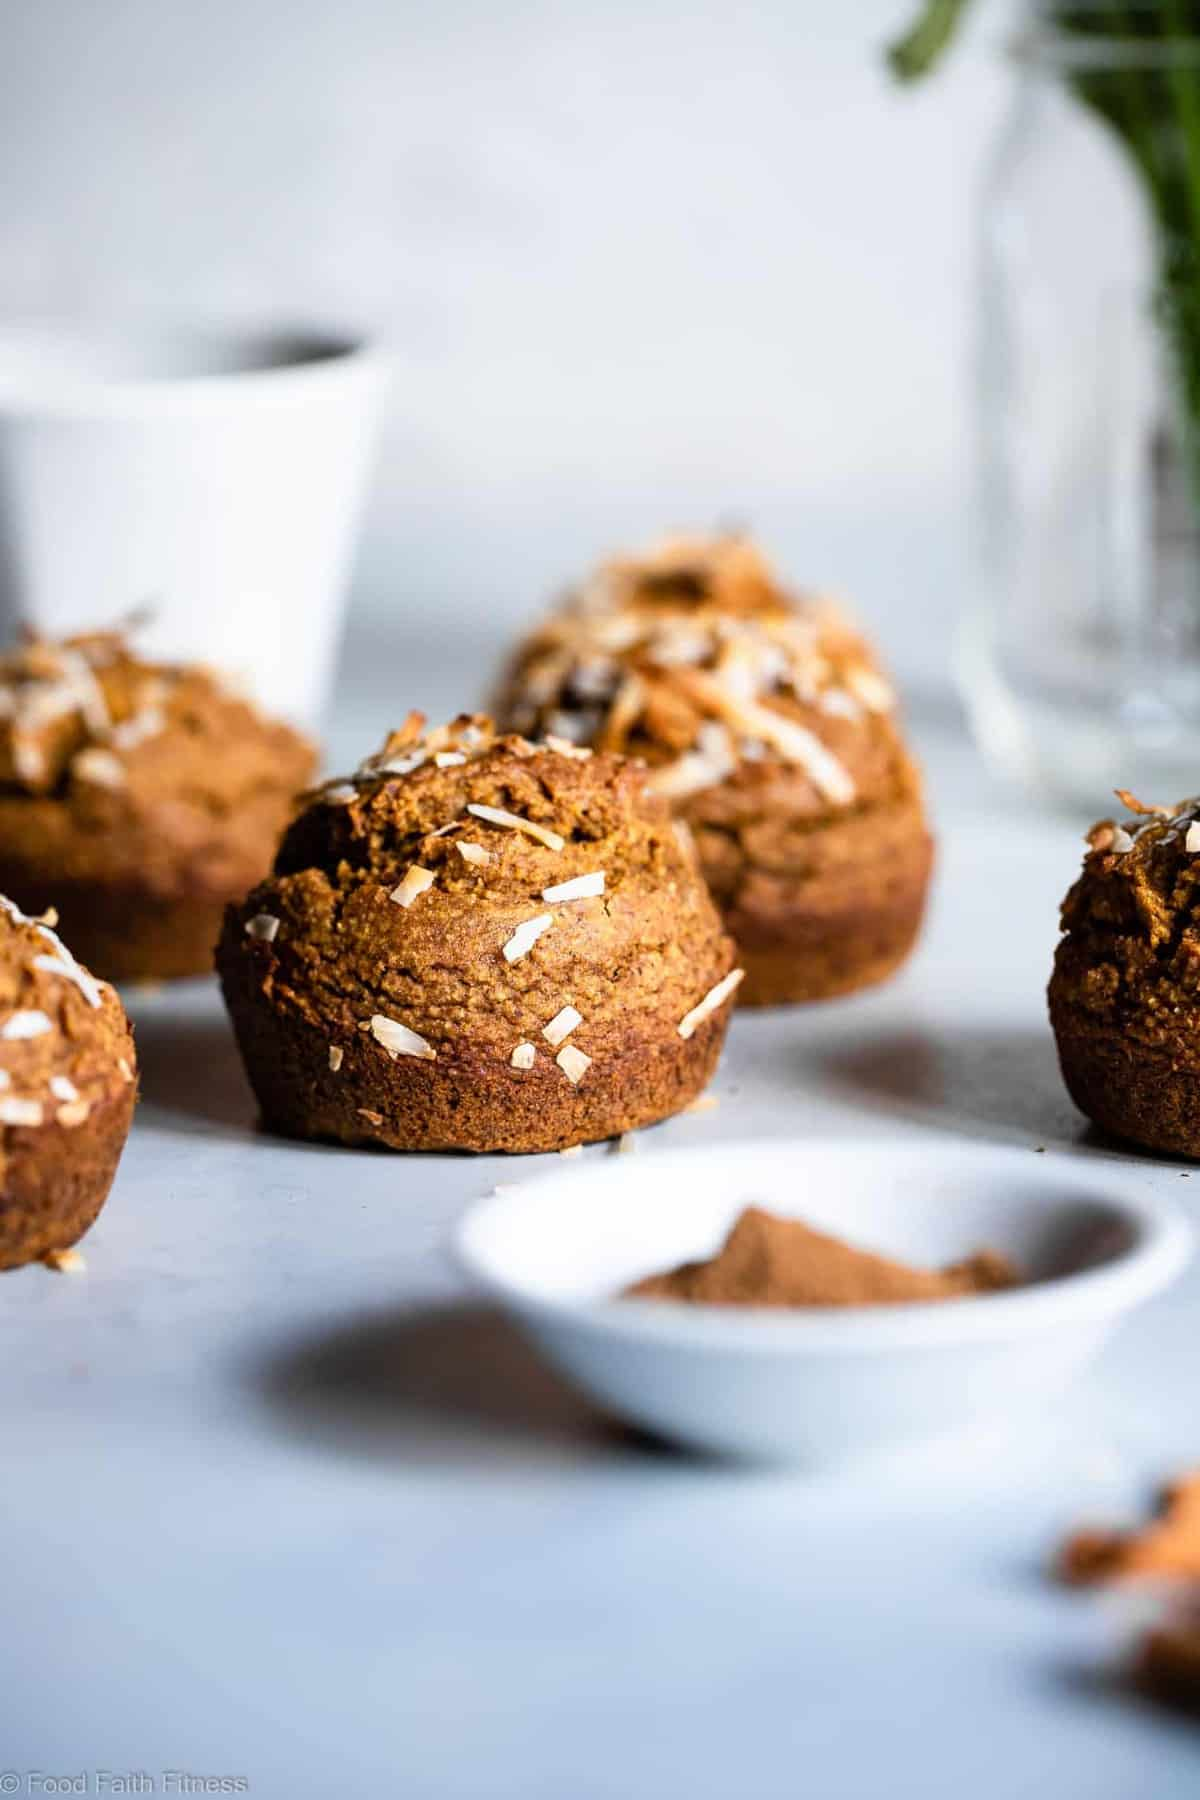 Sugar Free Gluten Free Oatmeal Carrot Muffins - These easy carrot muffins are naturally sweetened with dates and have a surprise, spicy-sweet kick! SO light and fluffy! Gluten free, healthy and tasty! | #Foodfaithfitness | #Glutenfree #Dairyfree #Healthy #Sugarfree #Muffins